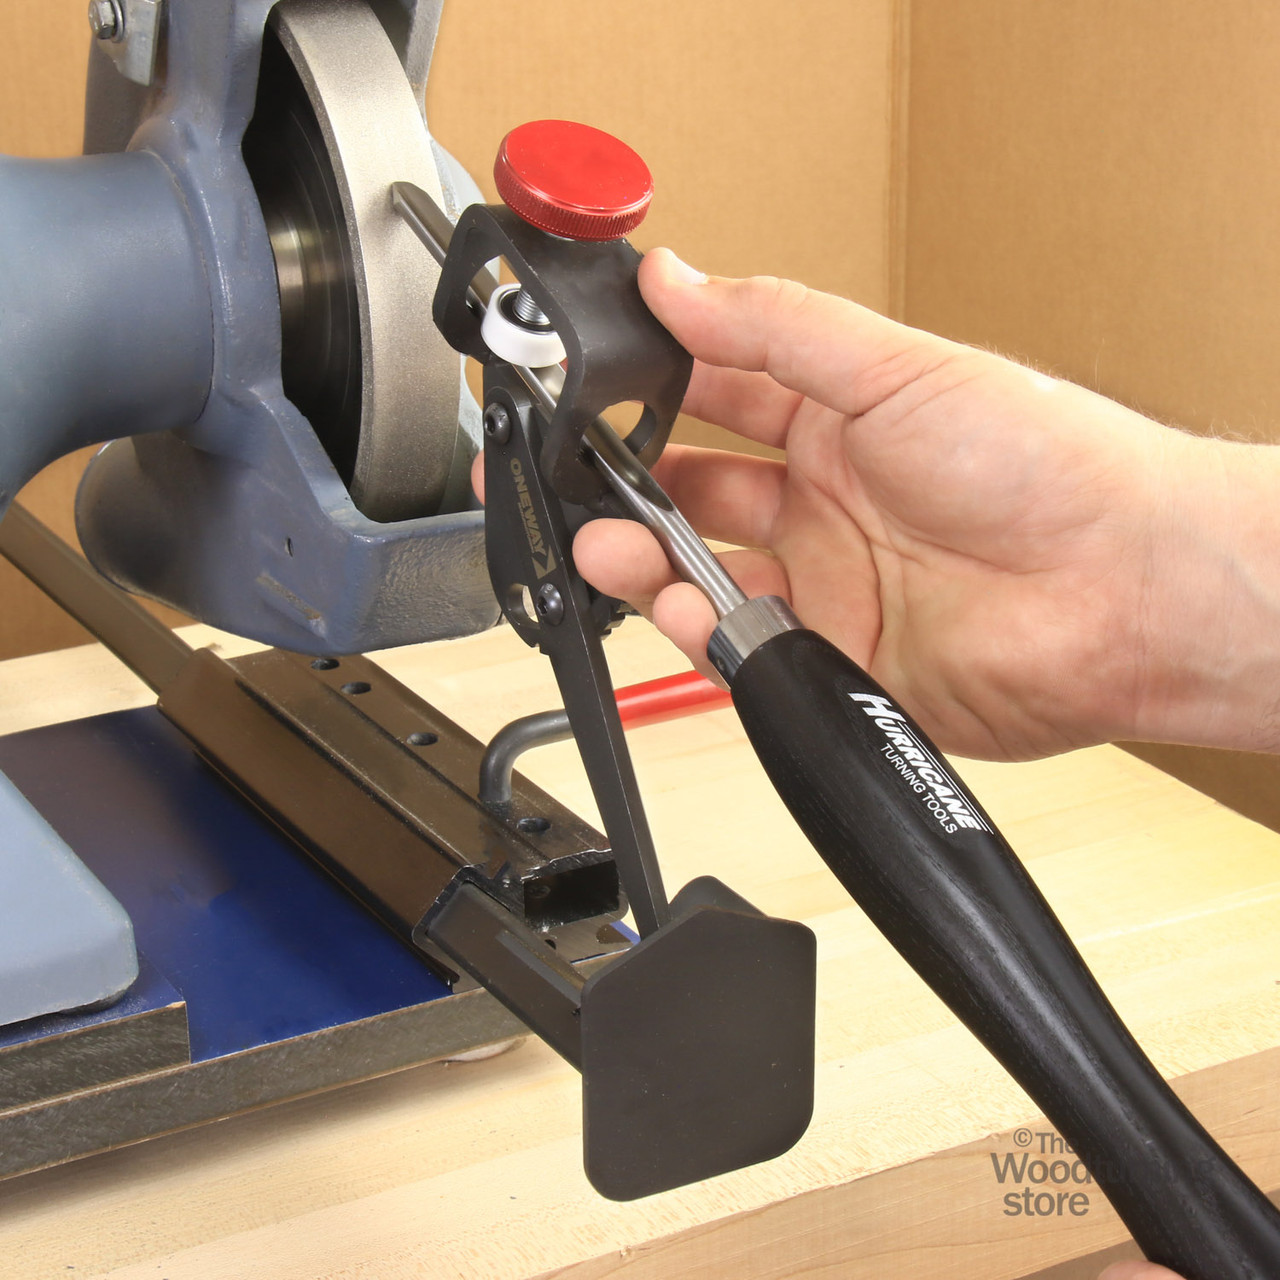 Oneway Wolverine Grinding Jig with Vari-Grind Attachment and Skew Attachment